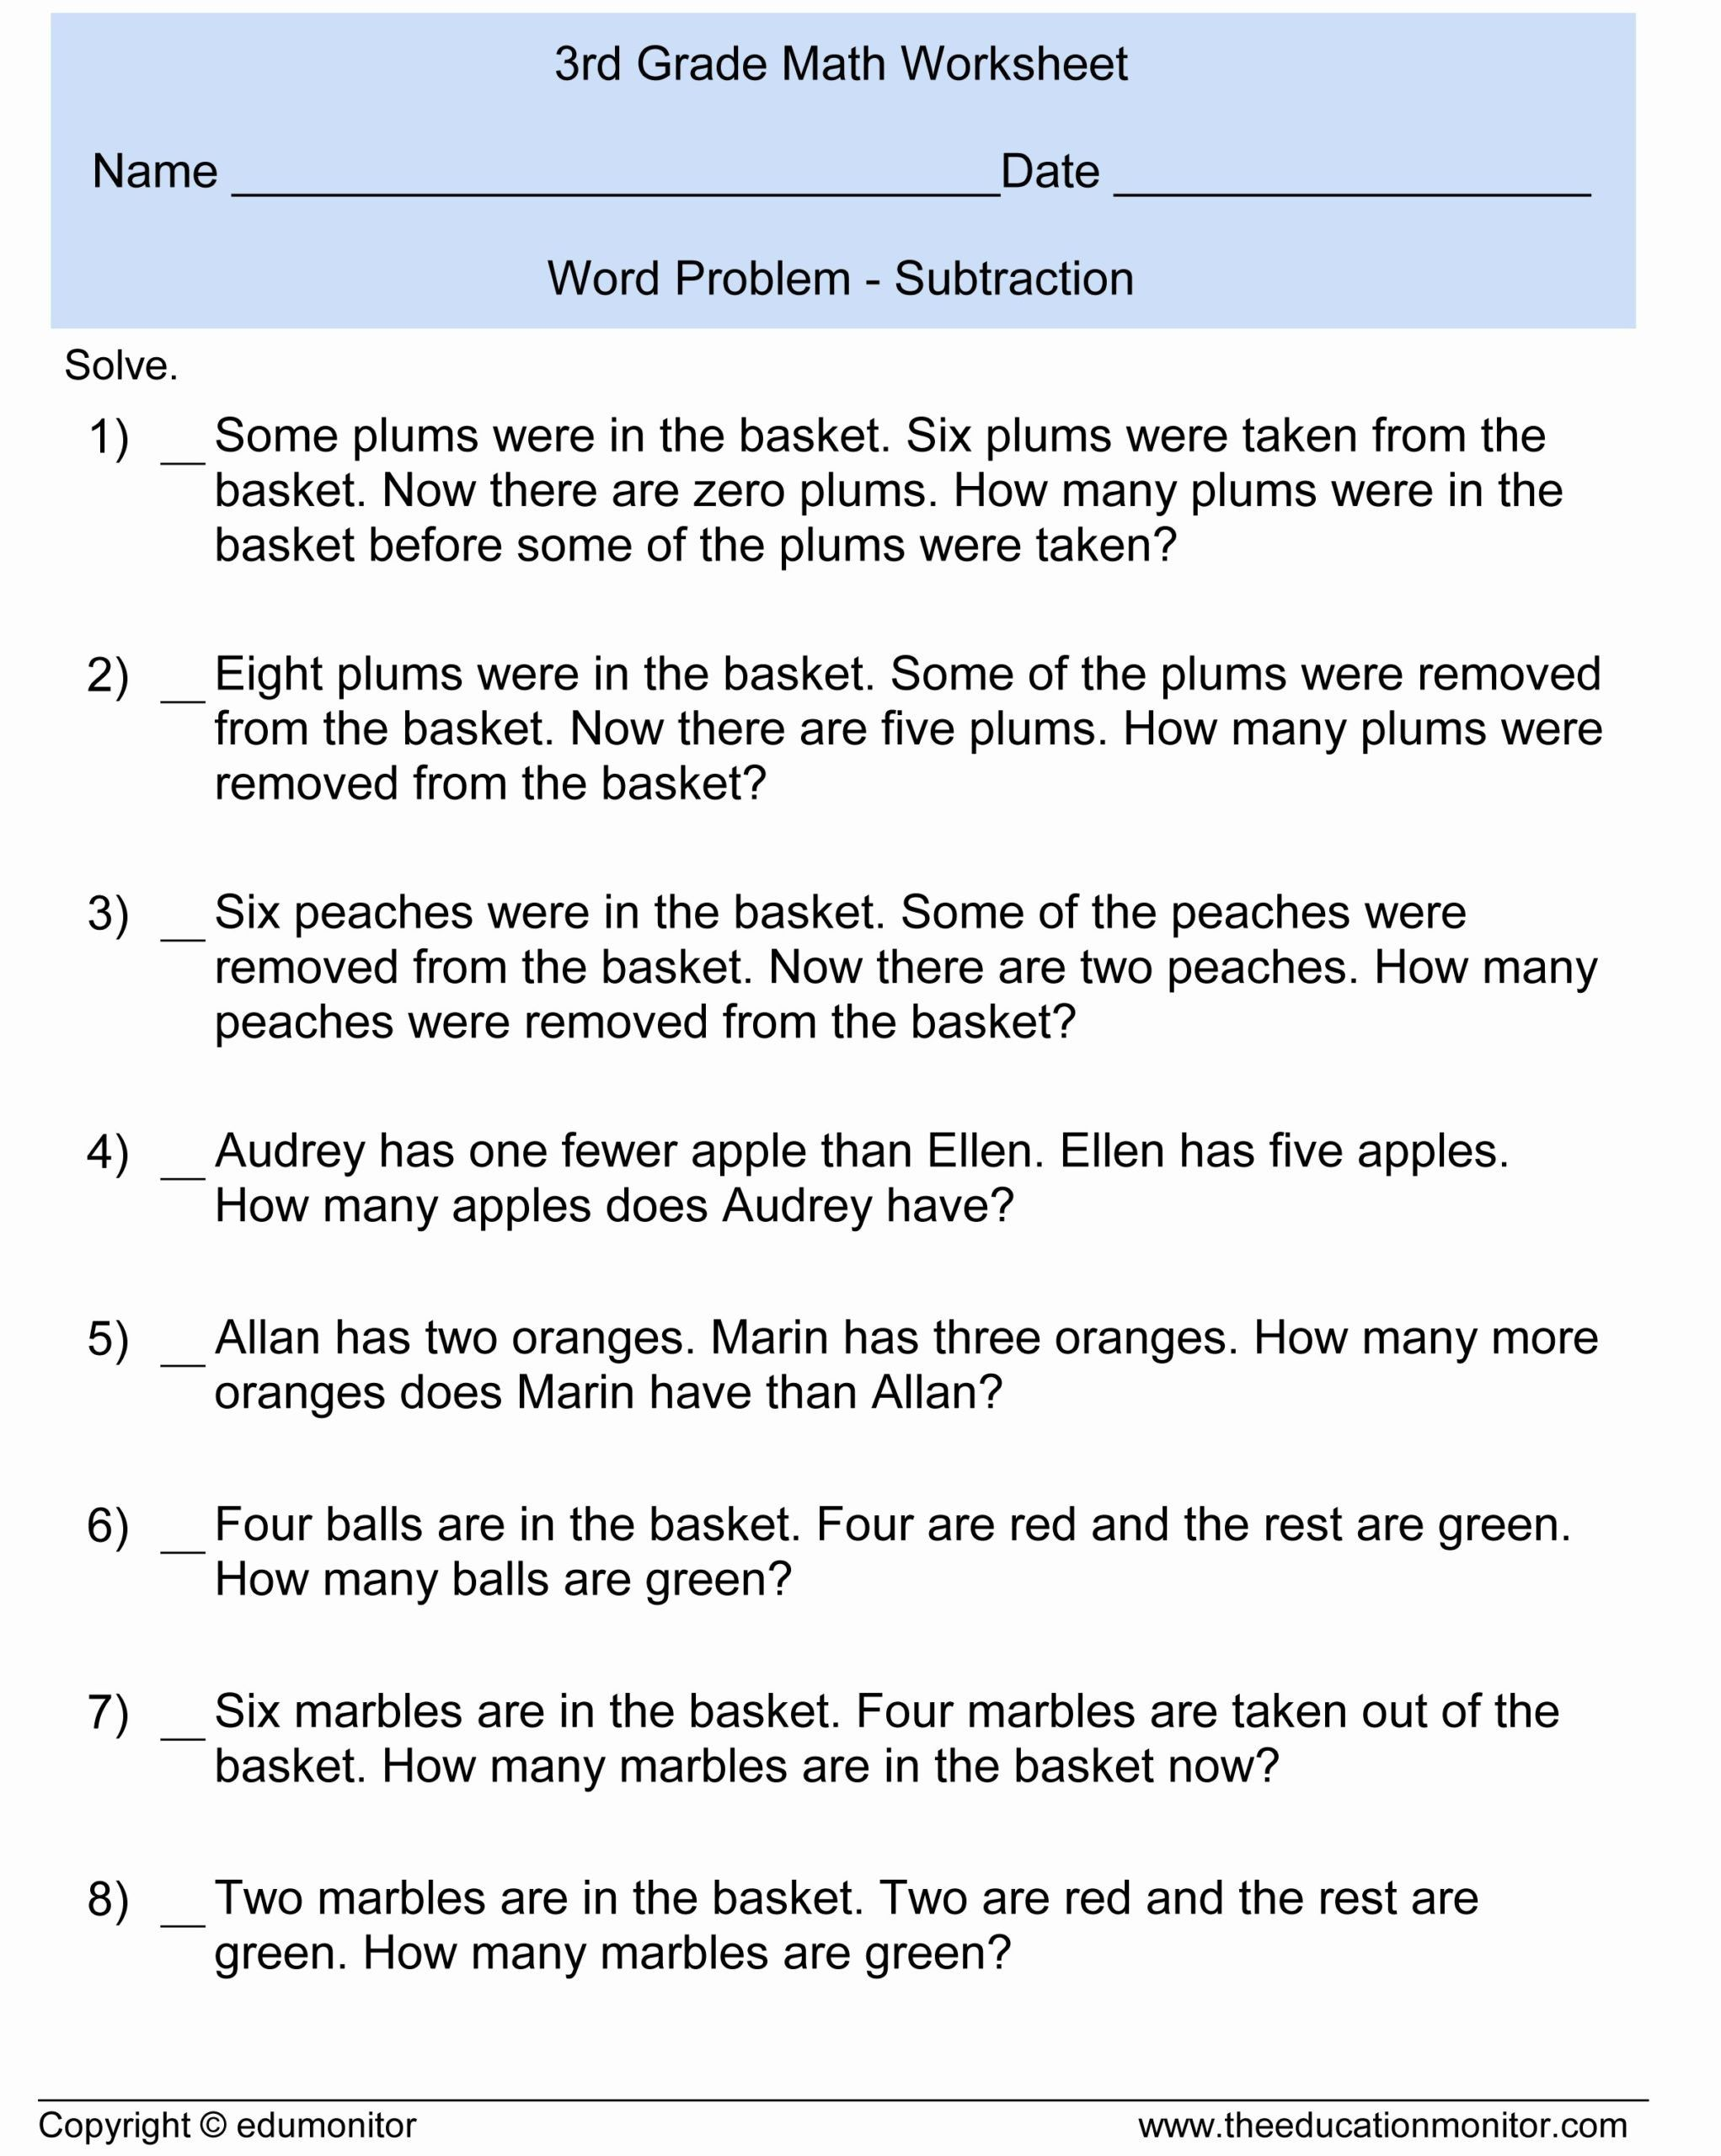 hight resolution of Multi Step Math Word Problems Worksheets   Printable Worksheets and  Activities for Teachers